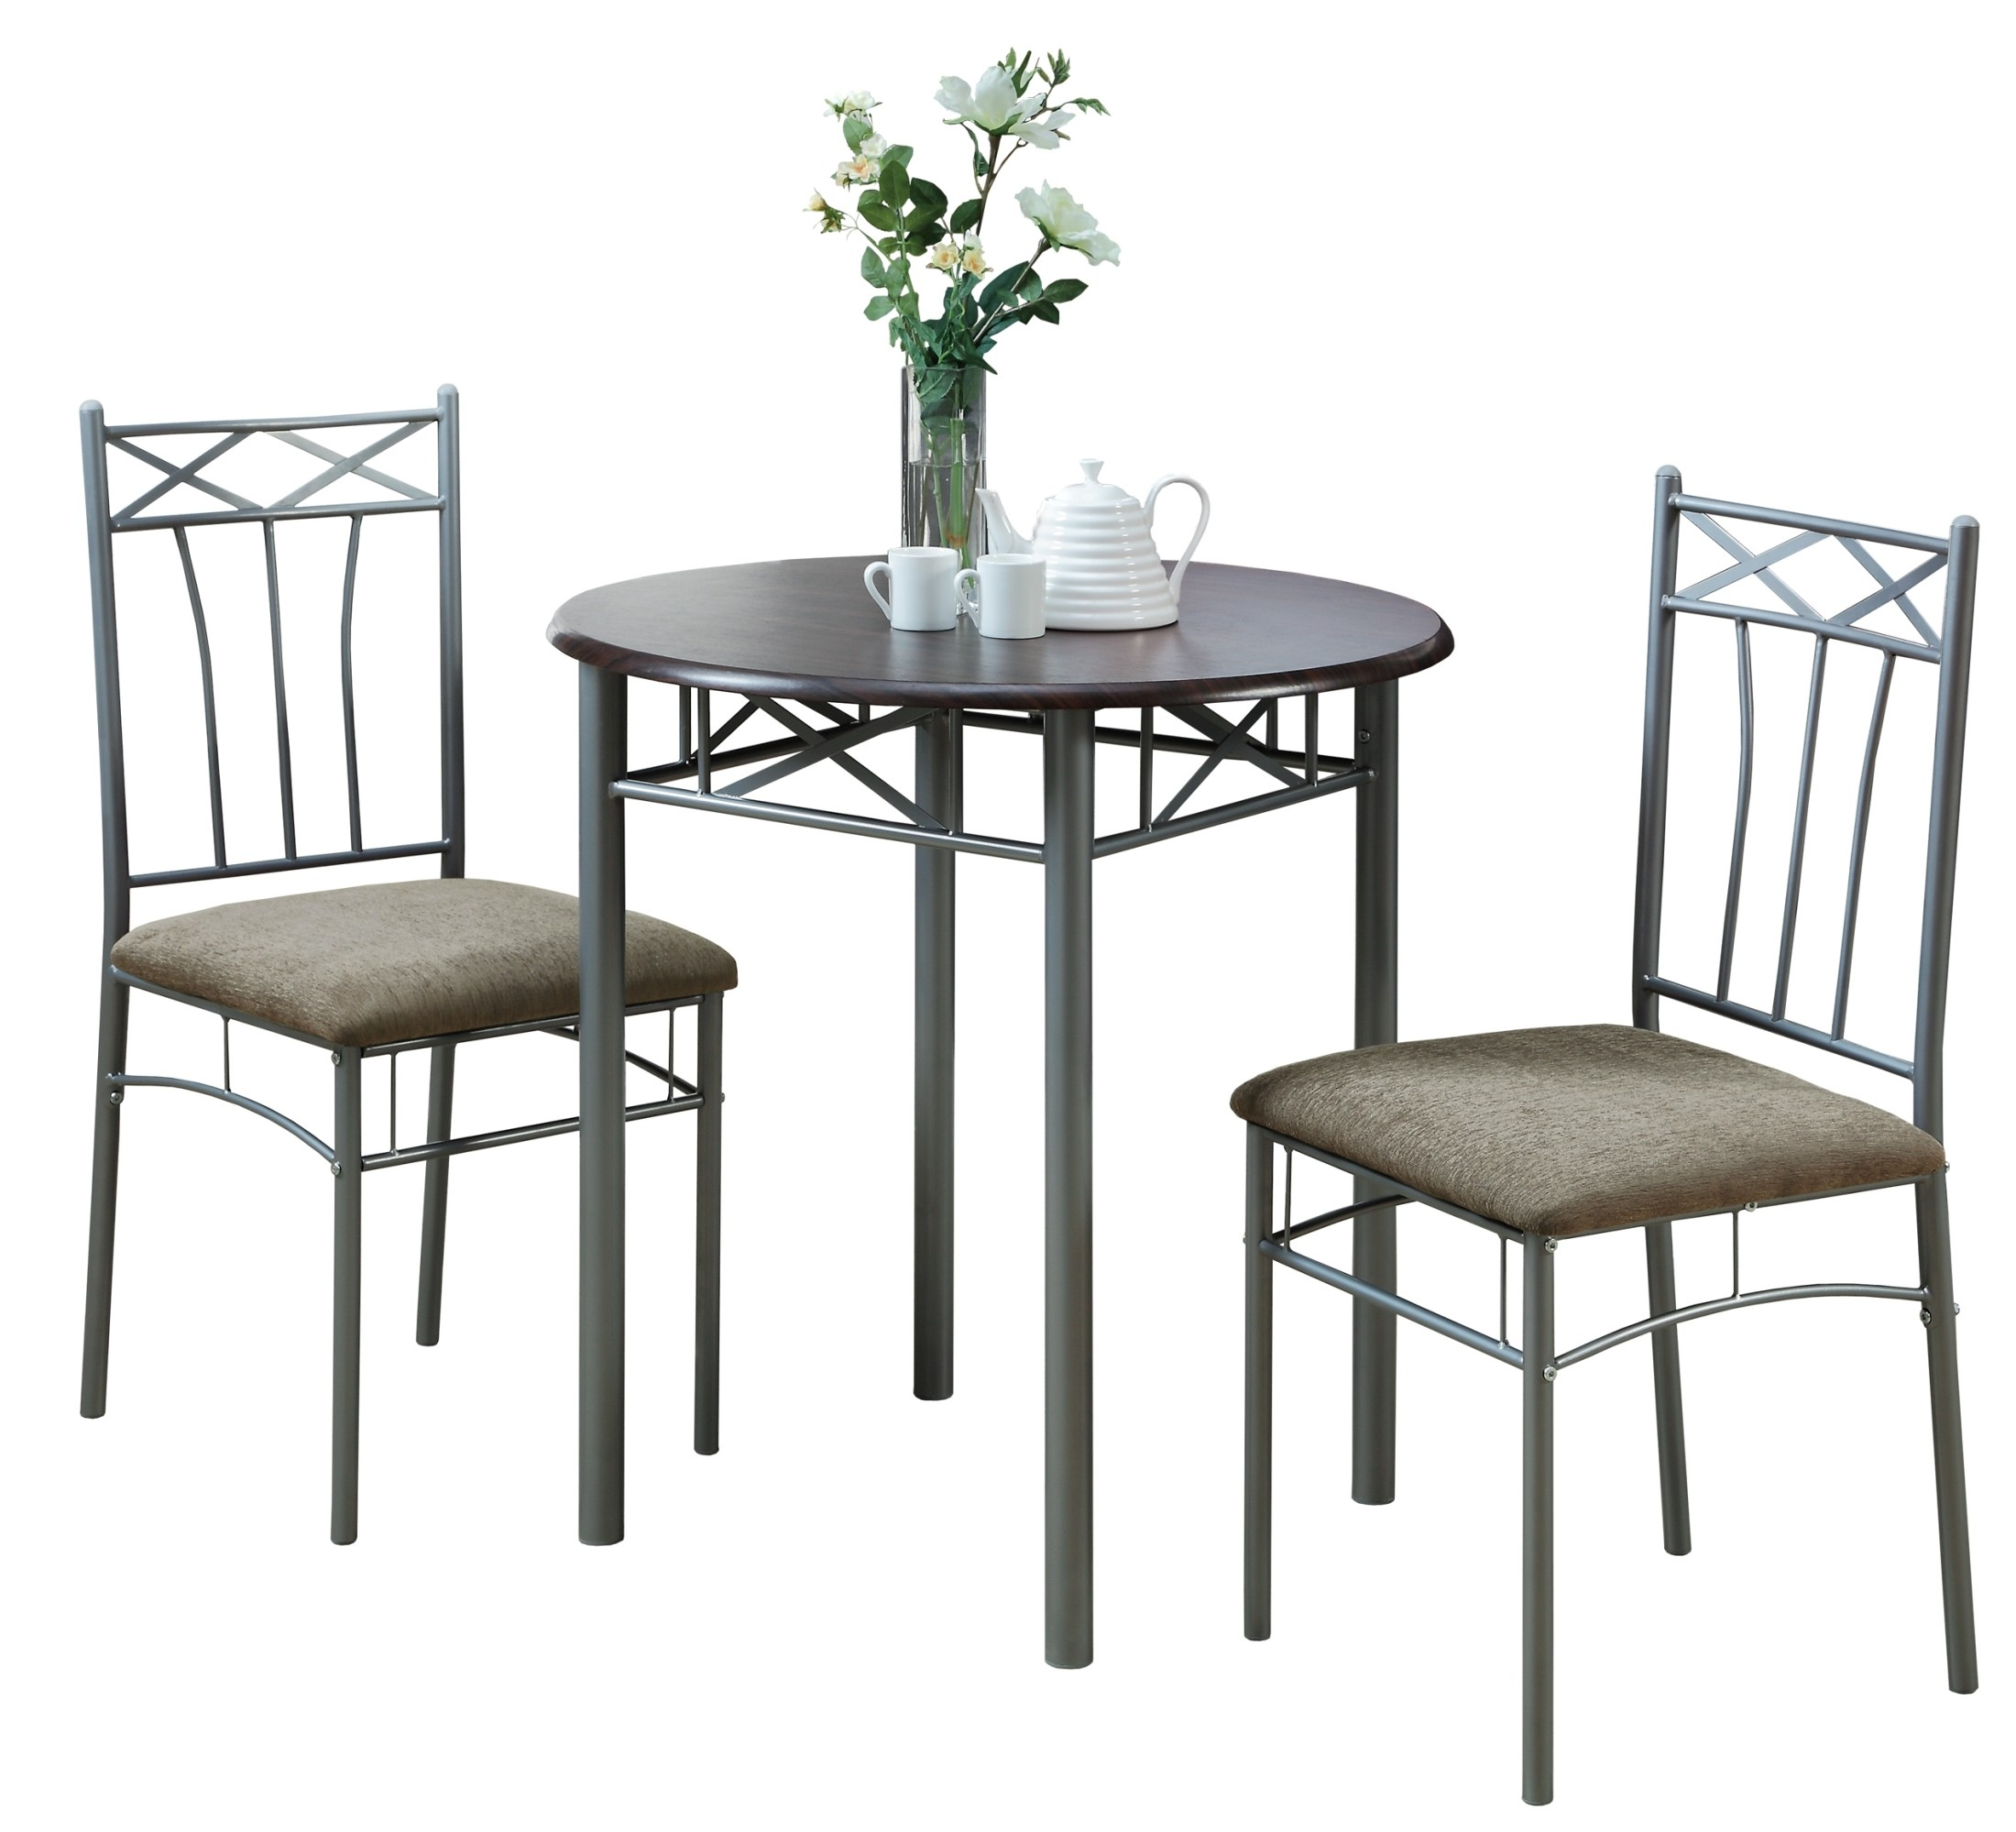 3075 cappuccino silver metal 3pcs bistro set from. Black Bedroom Furniture Sets. Home Design Ideas